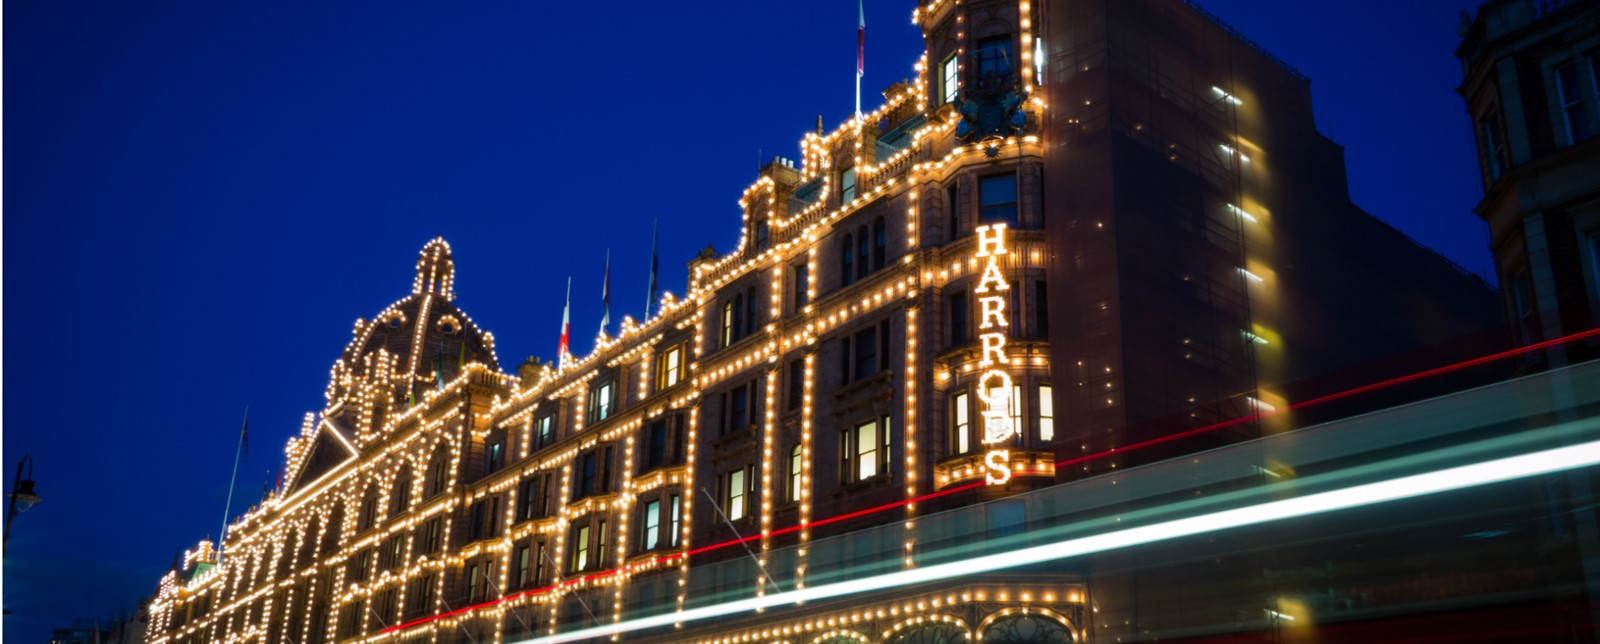 Harrod's illuminated at night